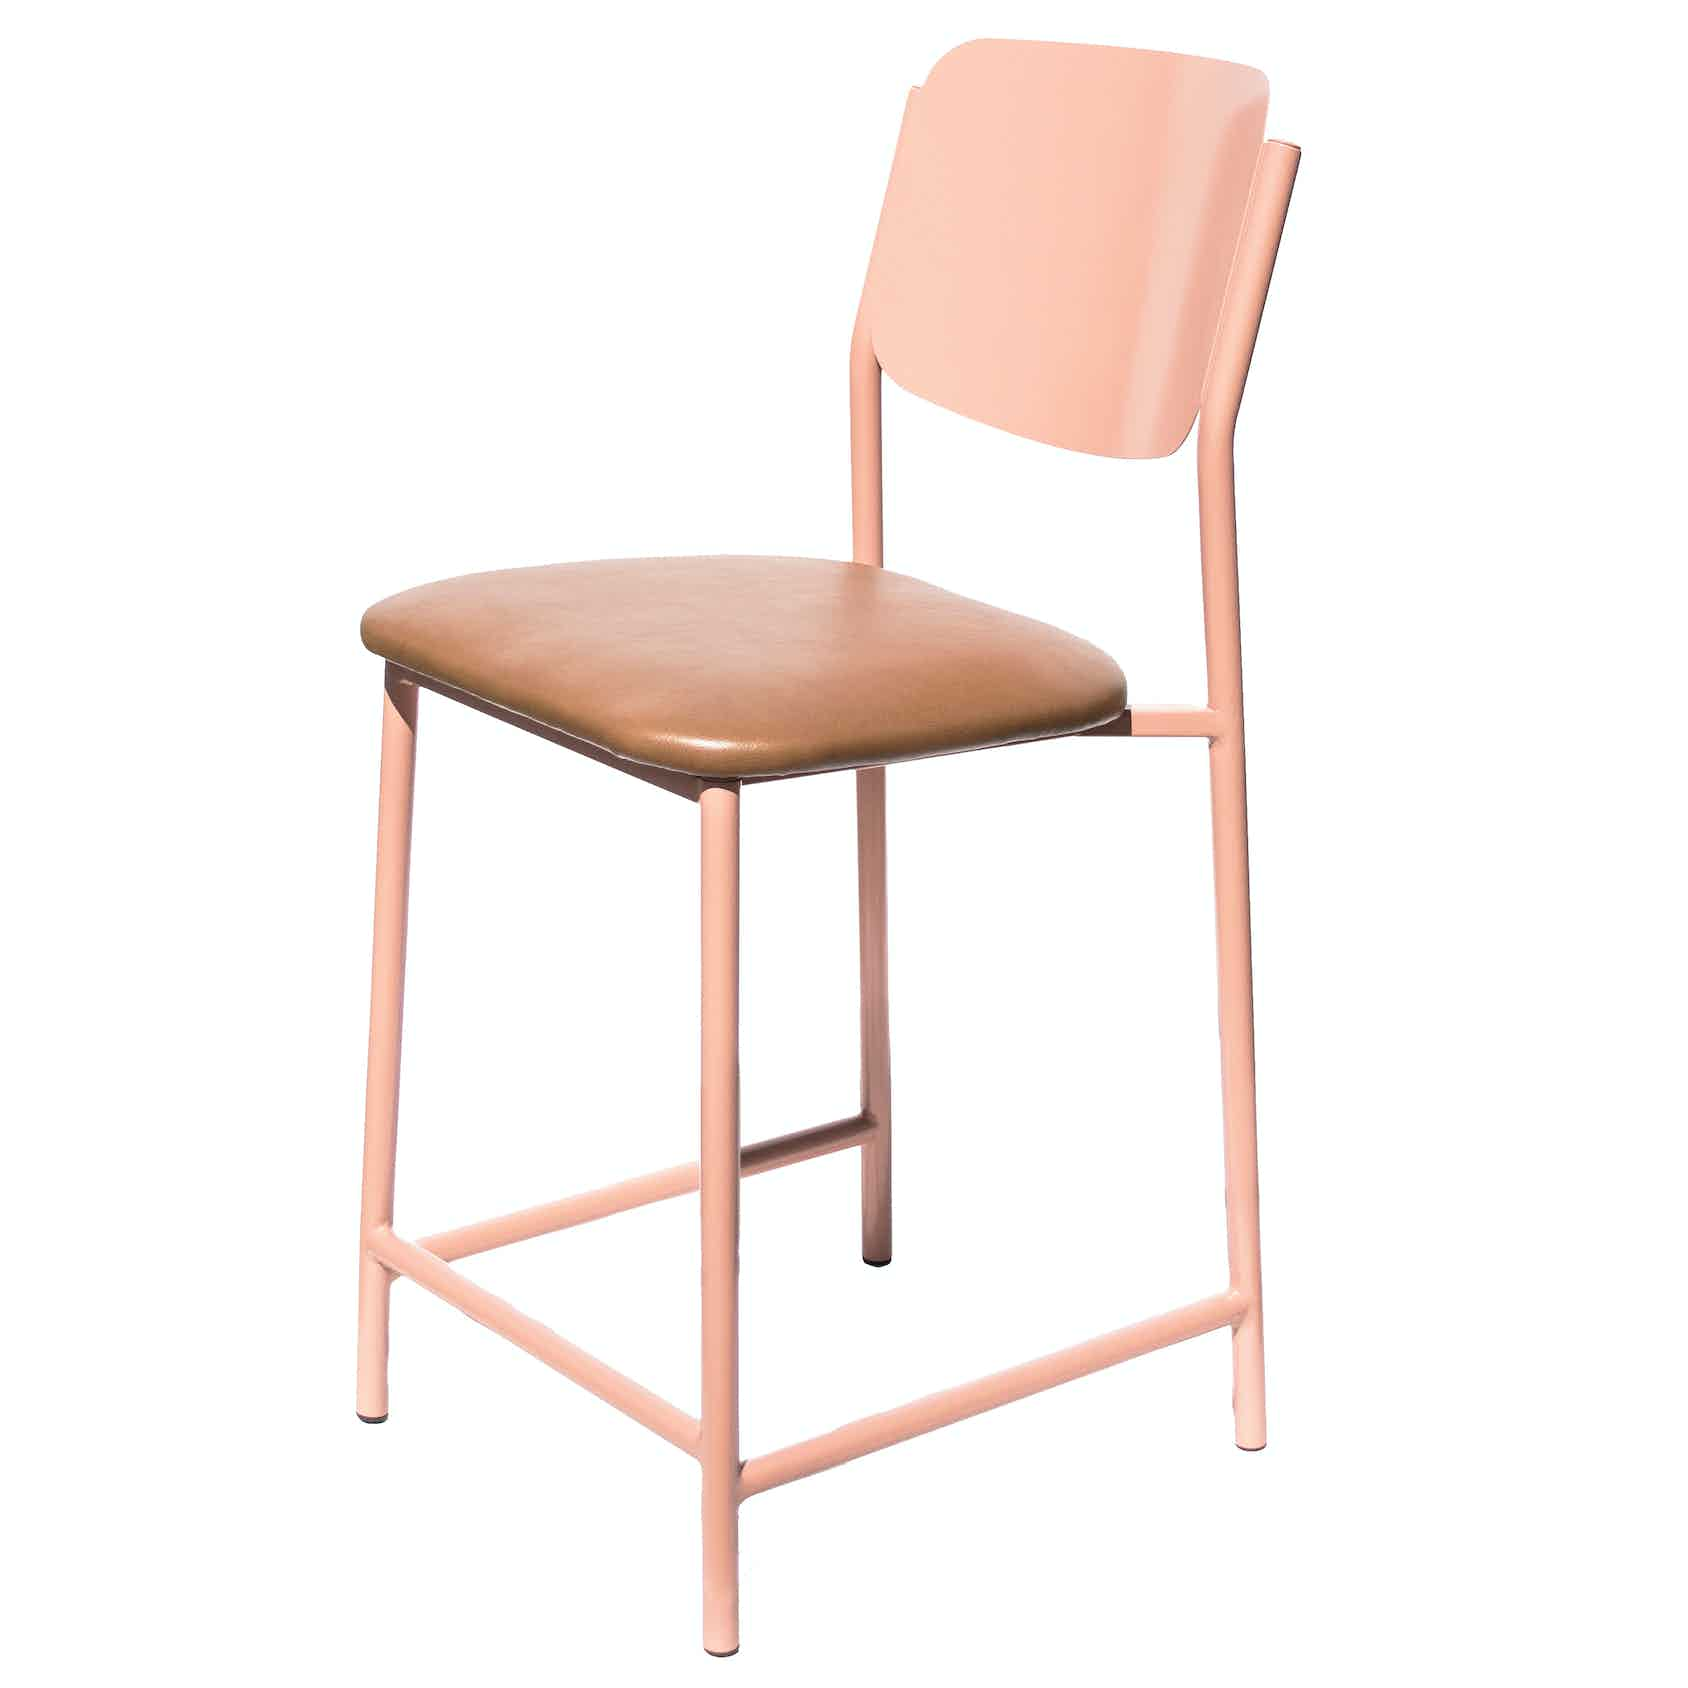 Division-12-l32-resto-counter-stool-haute-living-thumbnail